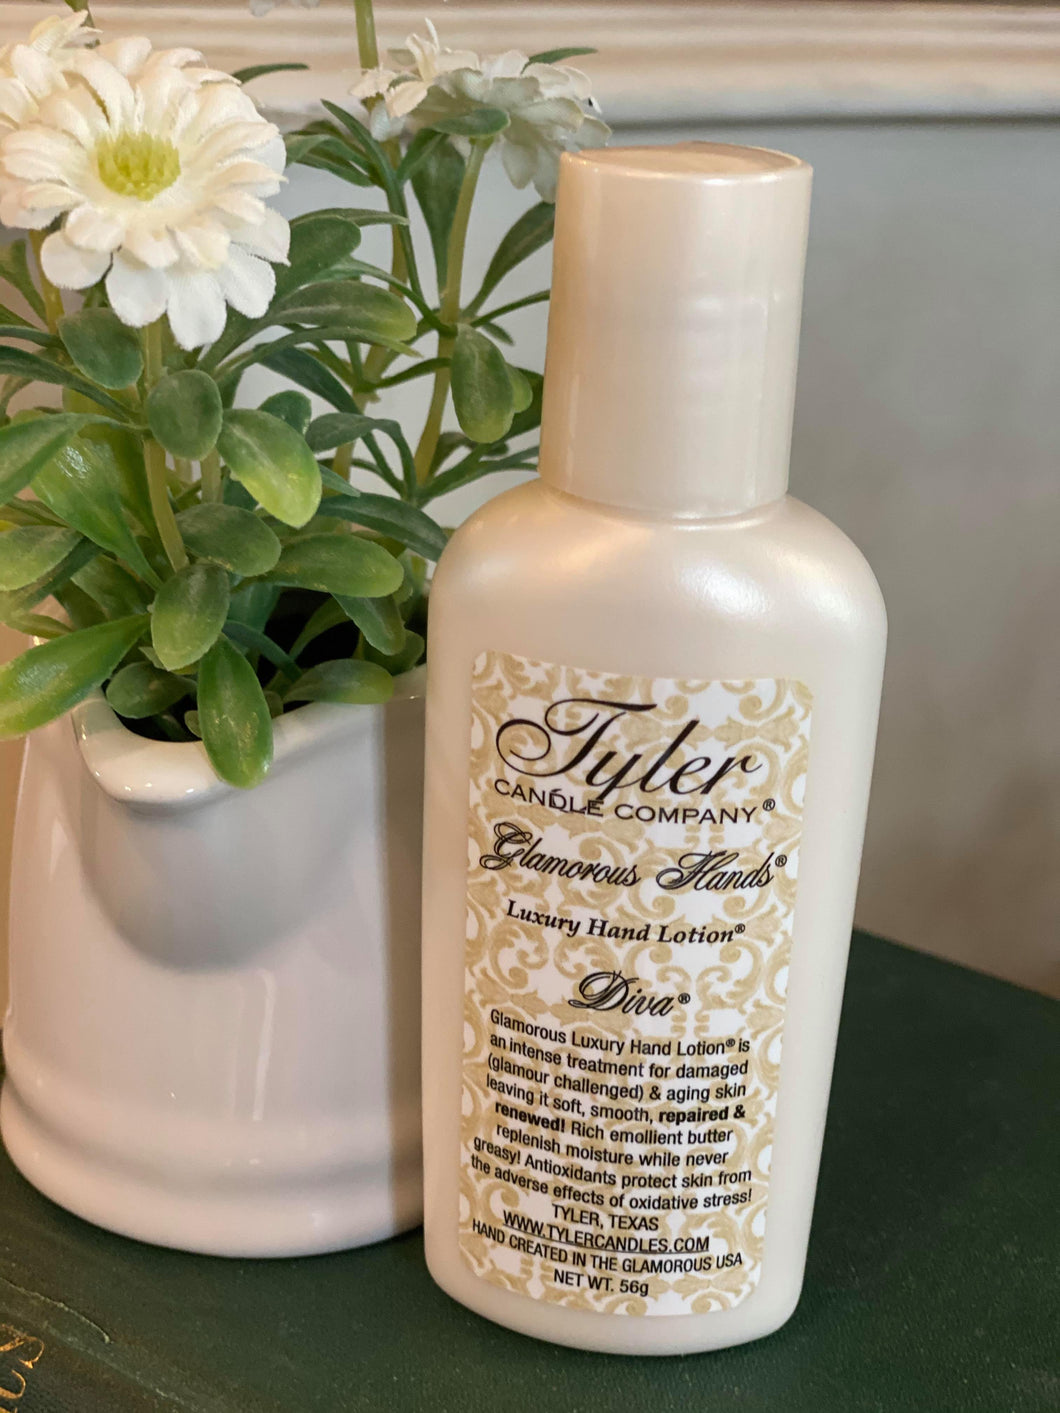 Tyler Luxury Hand Lotion - Diva